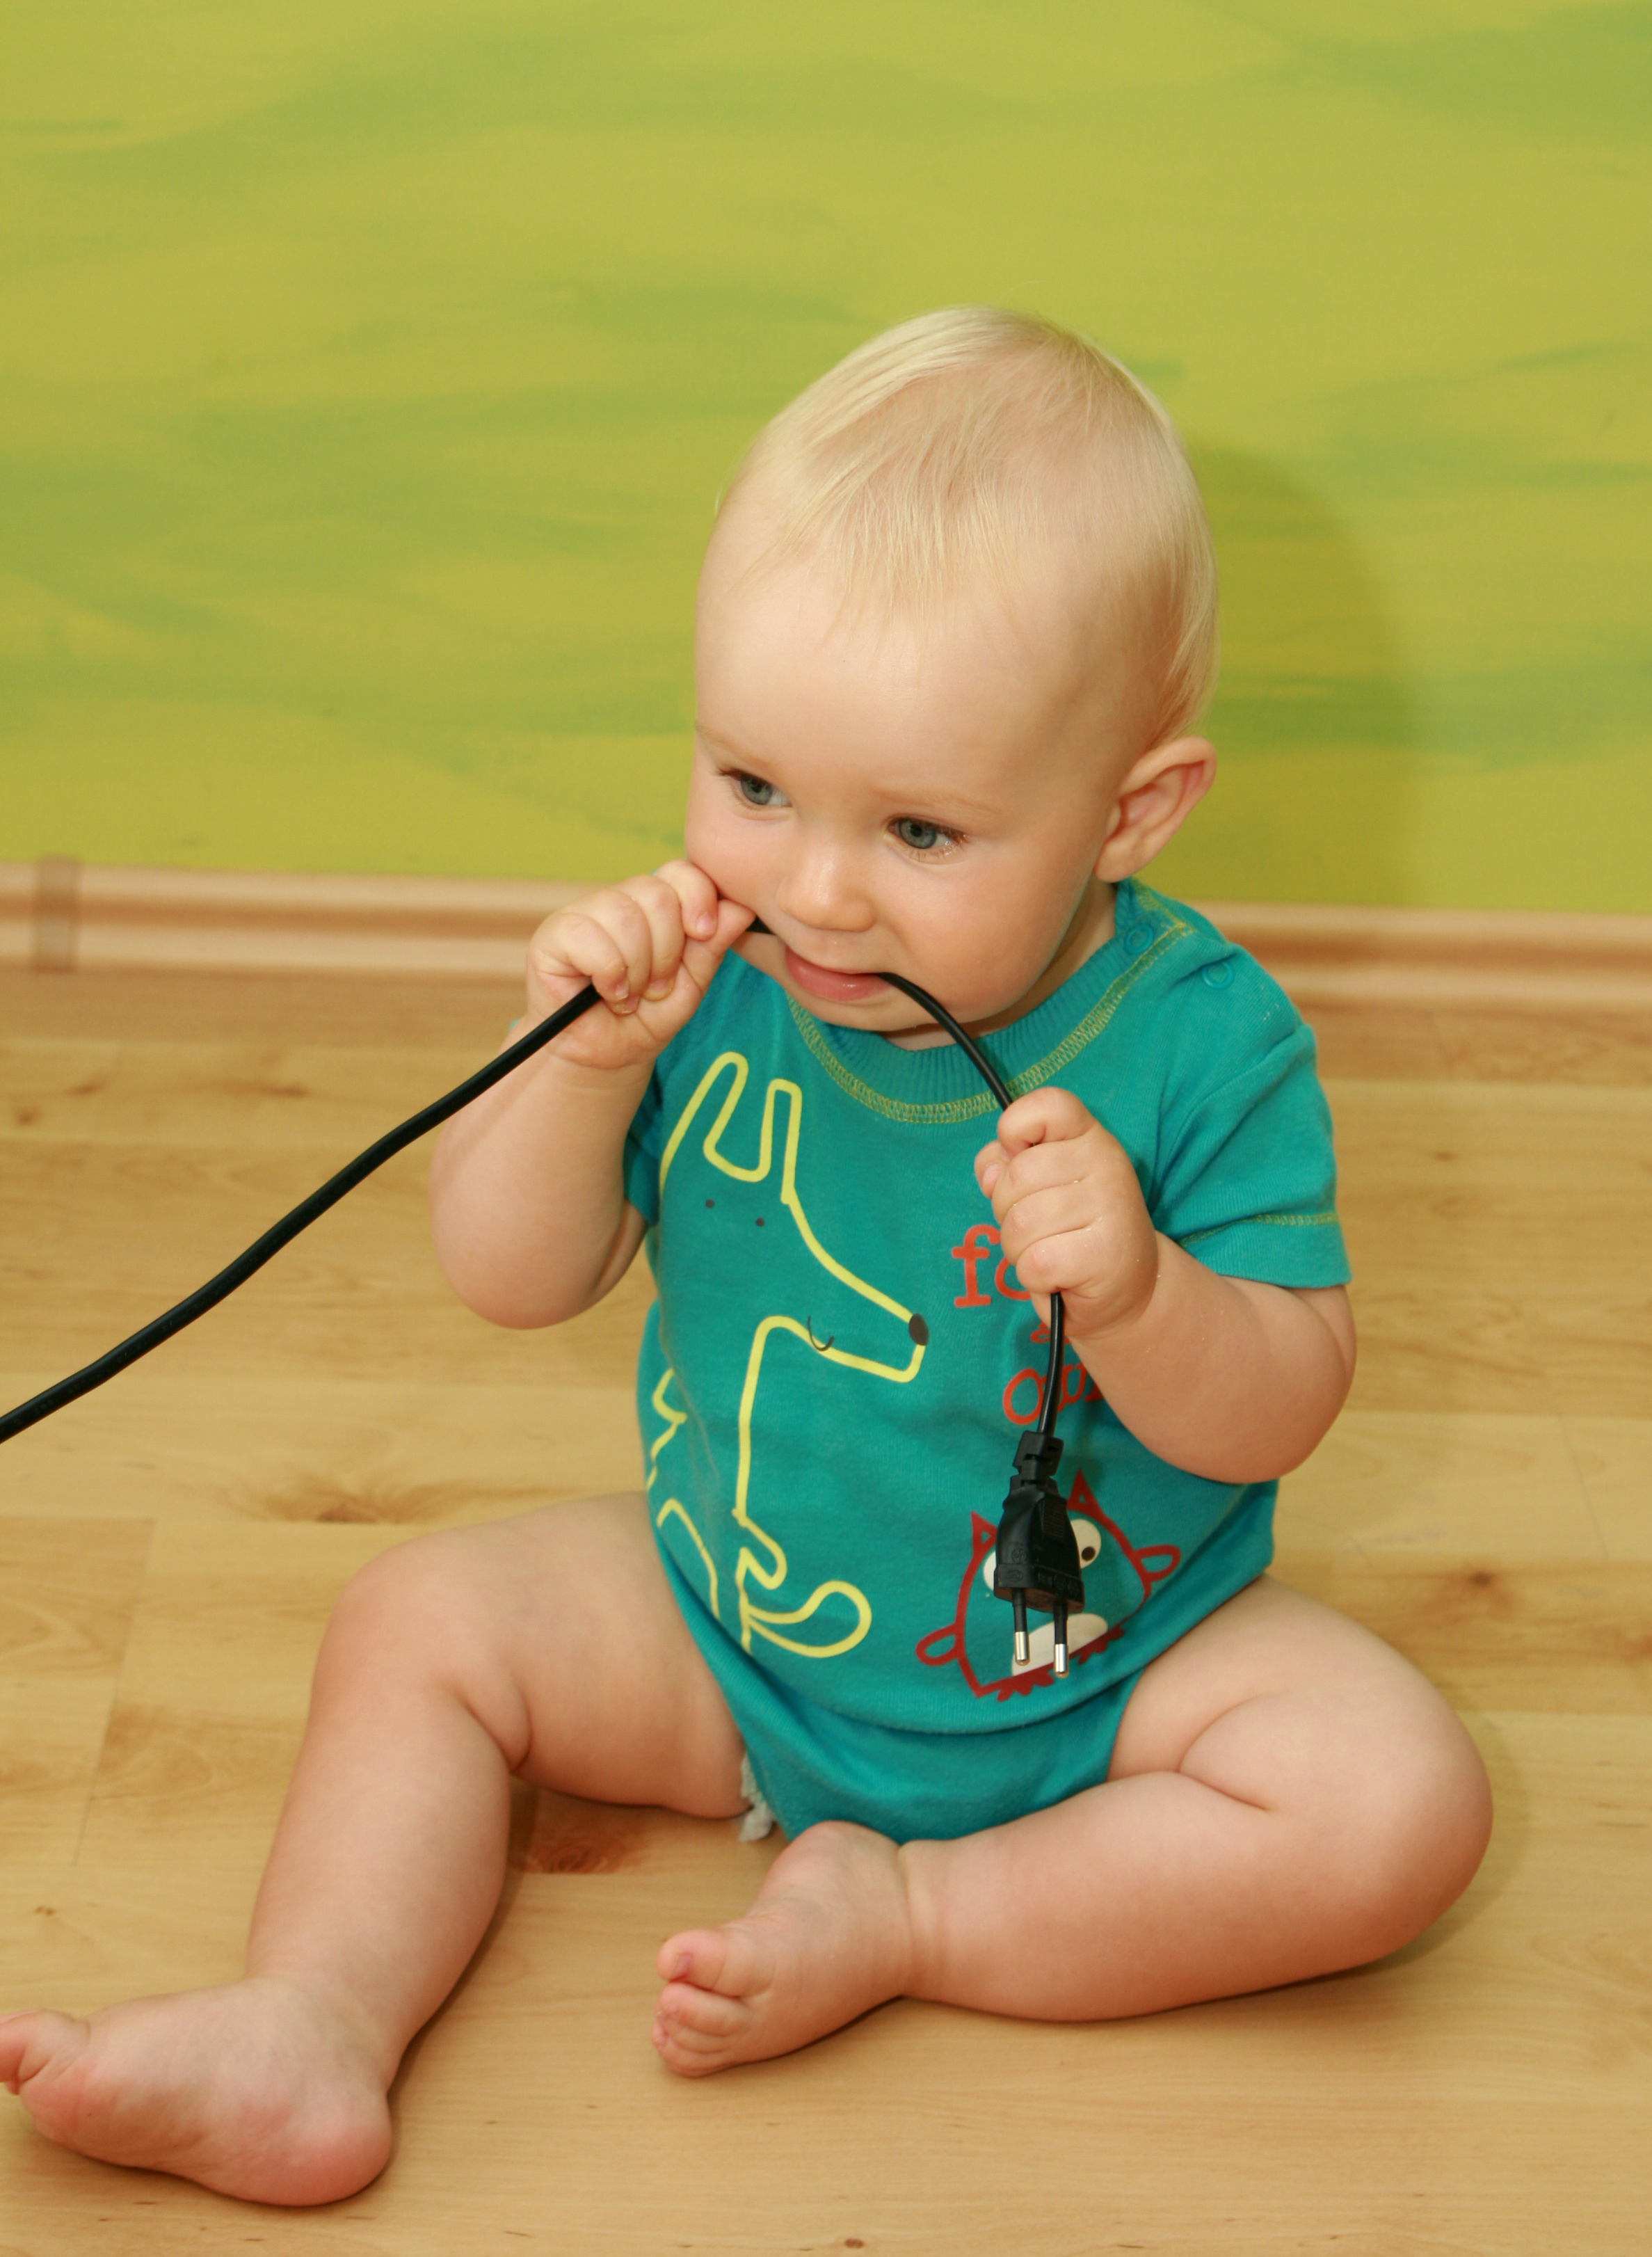 How to prevent your baby from chewing on cords.